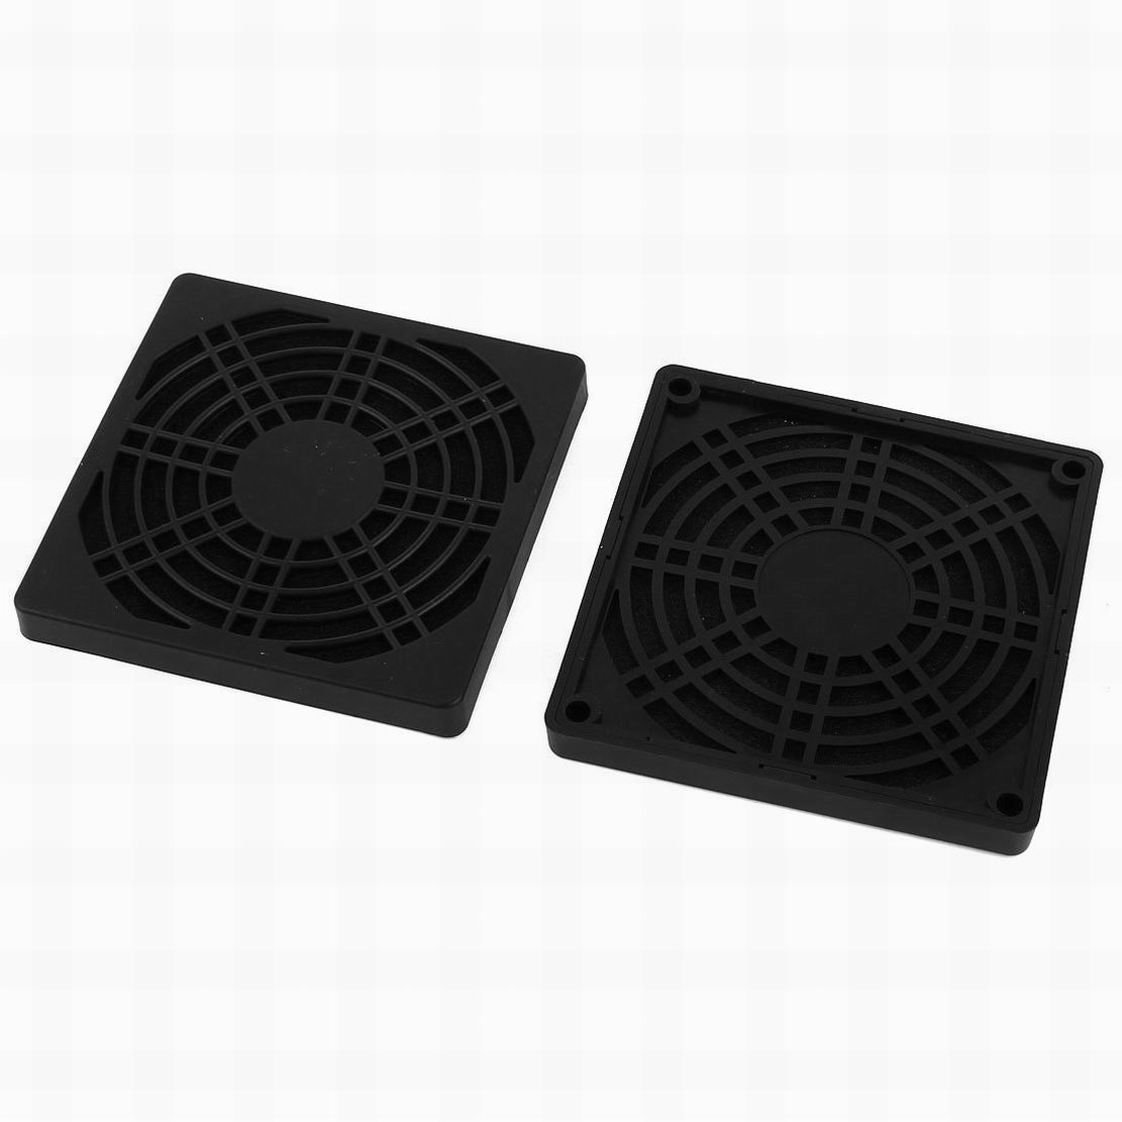 Fuxell 2 Some reservation Pcs Dustproof Dust Filter Guard for Grill 90mm PC Cover Finally resale start